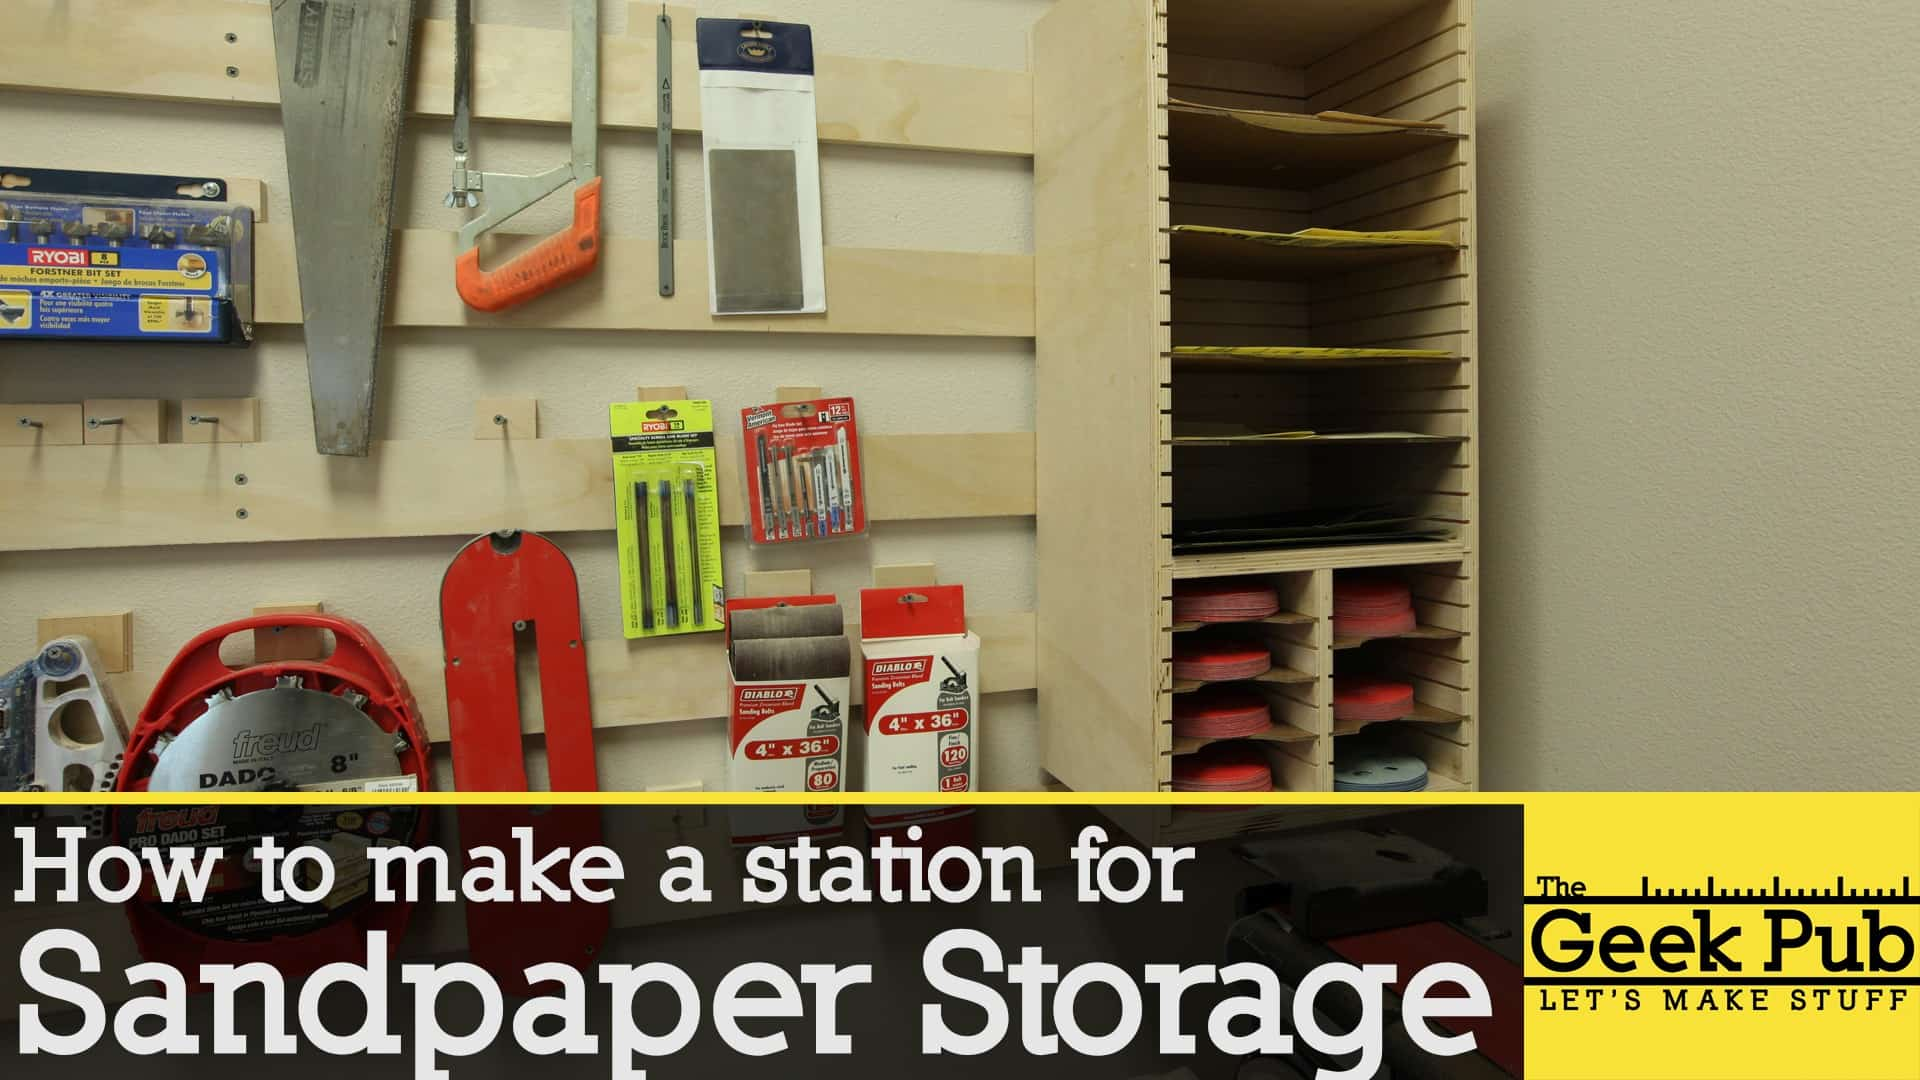 How to make a Sandpaper Storage Station  The Geek Pub